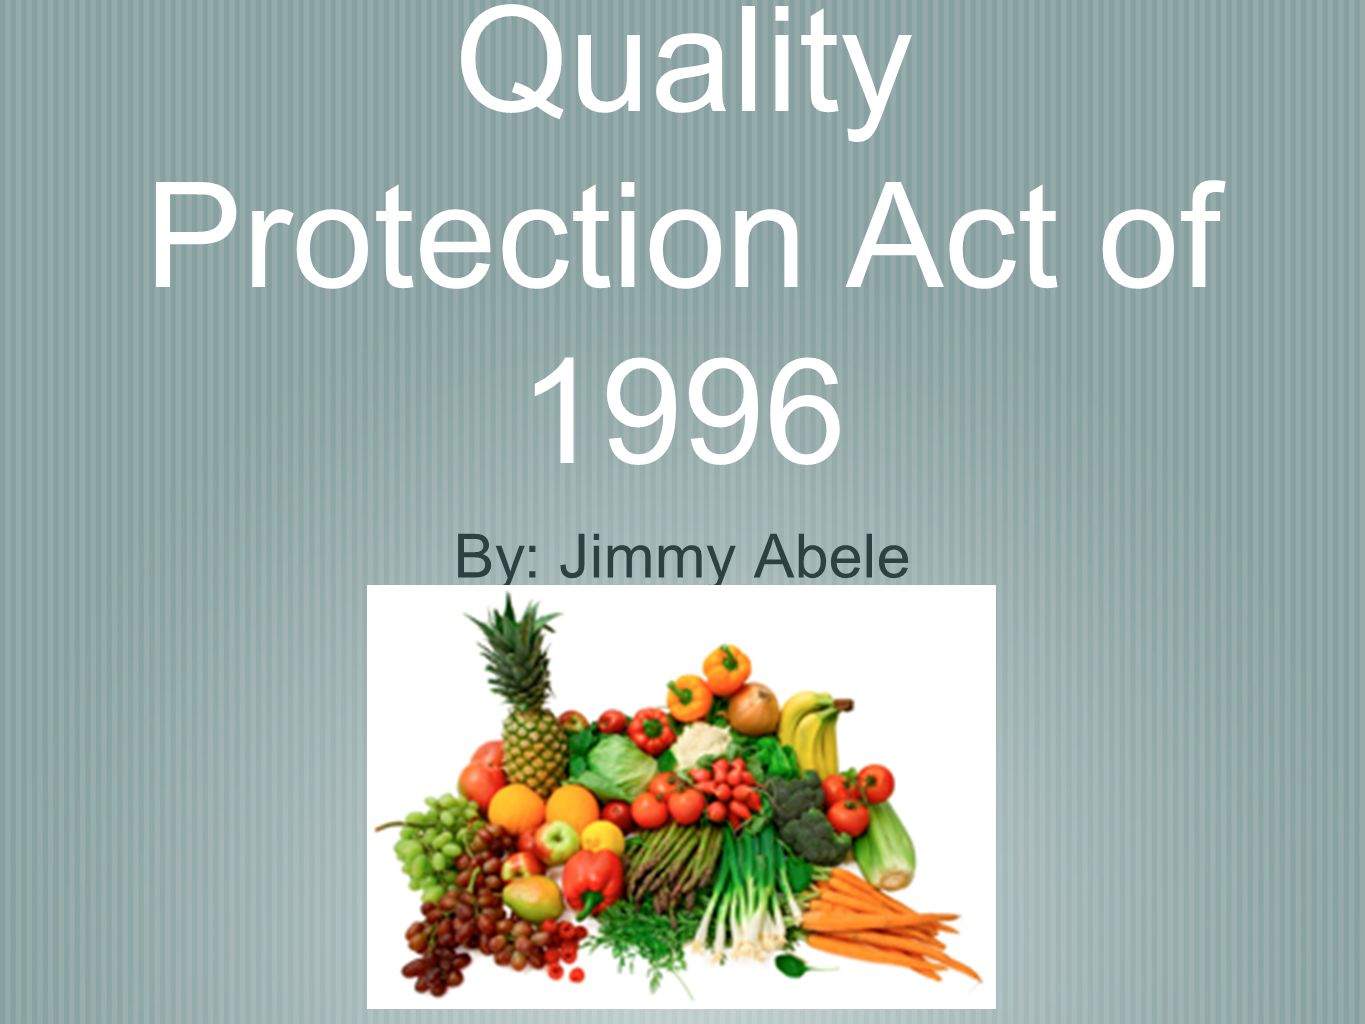 The Food Quality Protection Act of 1996 By: Jimmy Abele